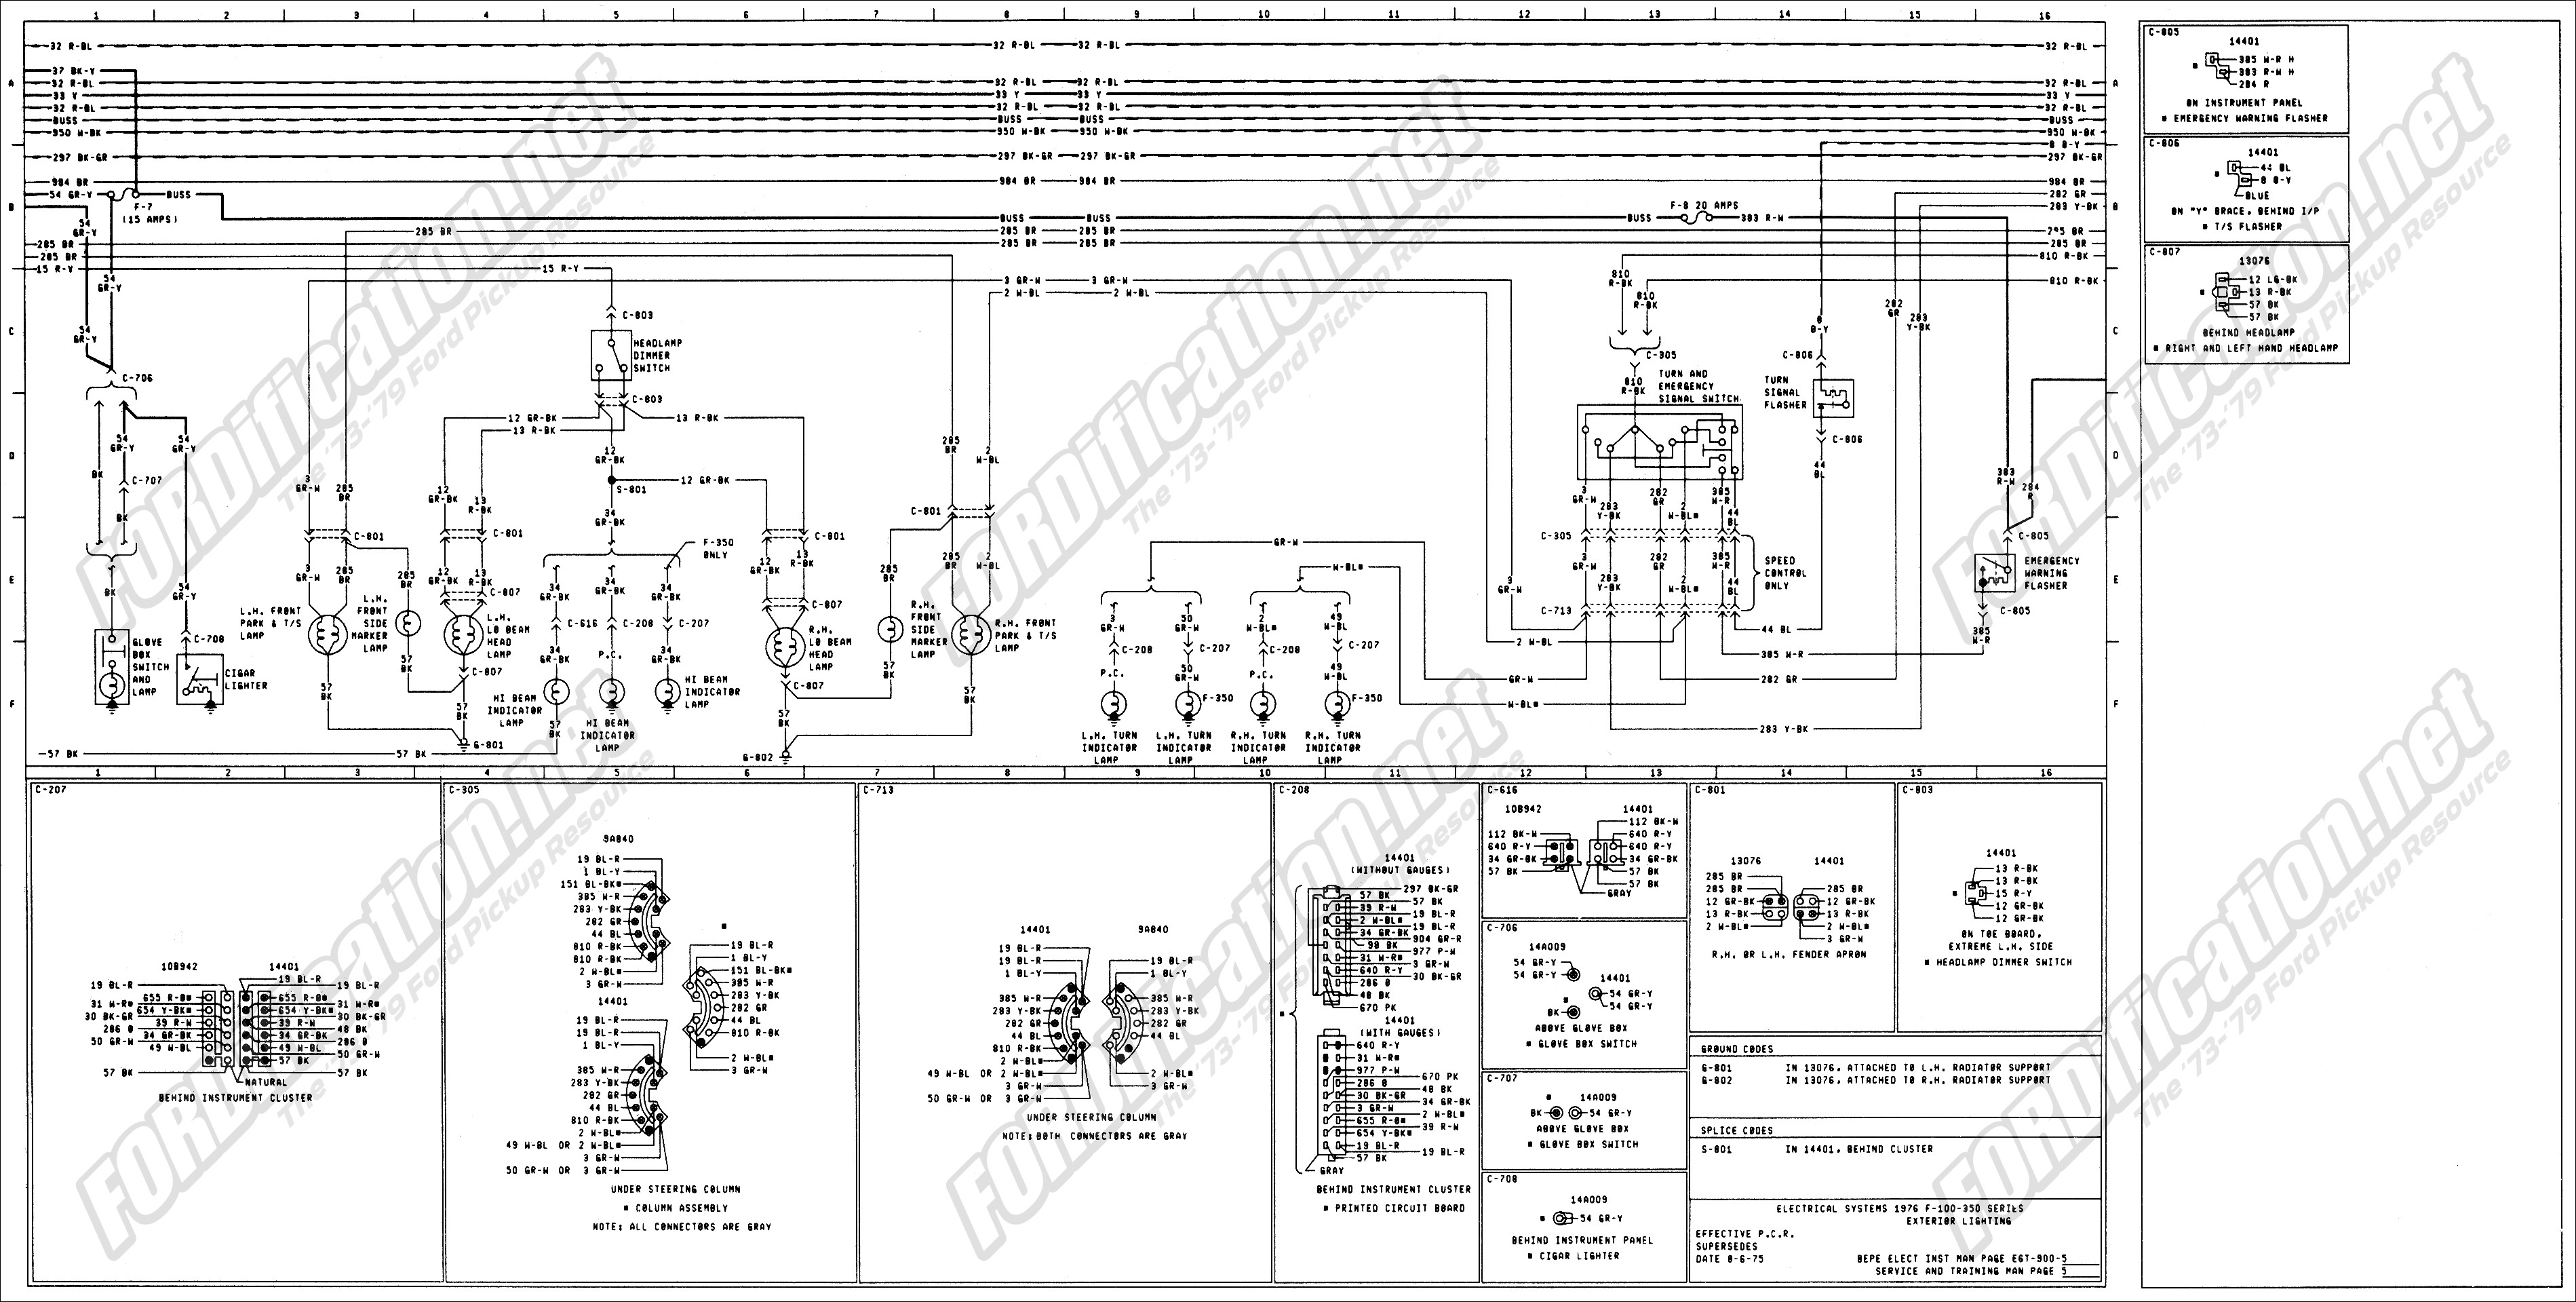 Ford F150 5 4 Engine Diagram 2 1973 1979 ford Truck Wiring Diagrams & Schematics fordification Of Ford F150 5 4 Engine Diagram 2